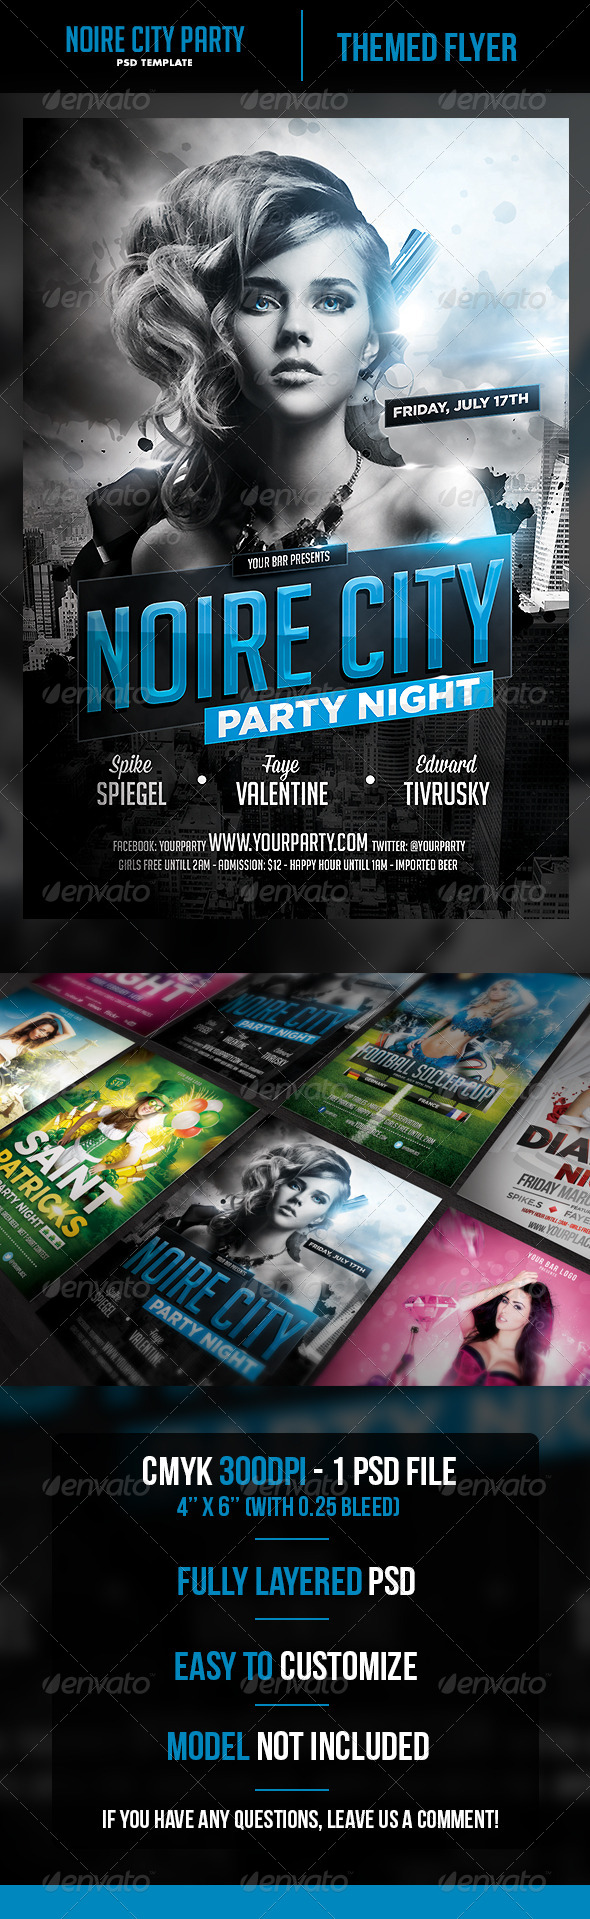 GraphicRiver Noire City Party Flyer Template 6913876